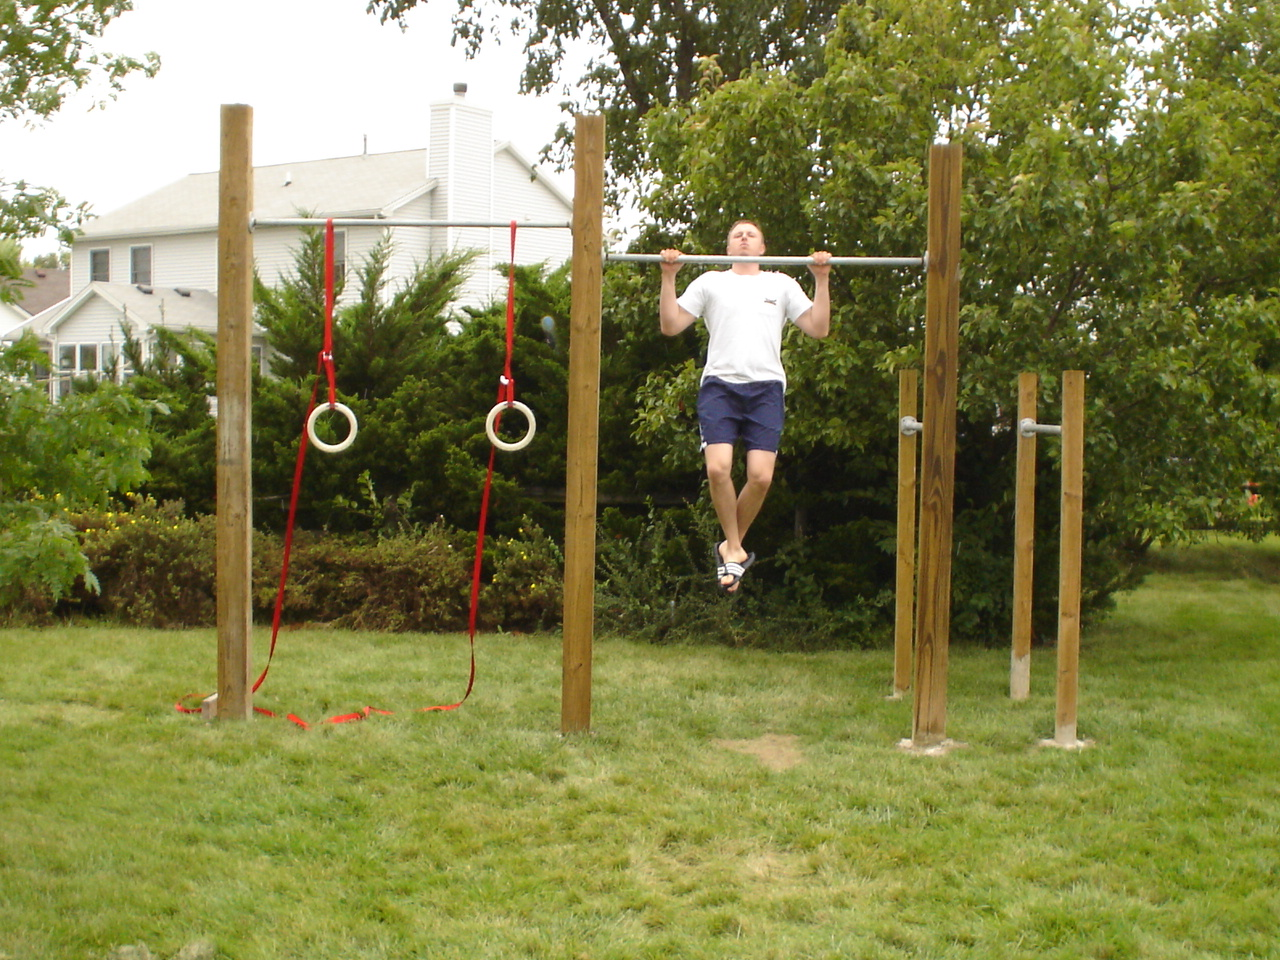 Backyard Gymnastics Bars : We started this in my backyard, my friend Brandt helped me build this